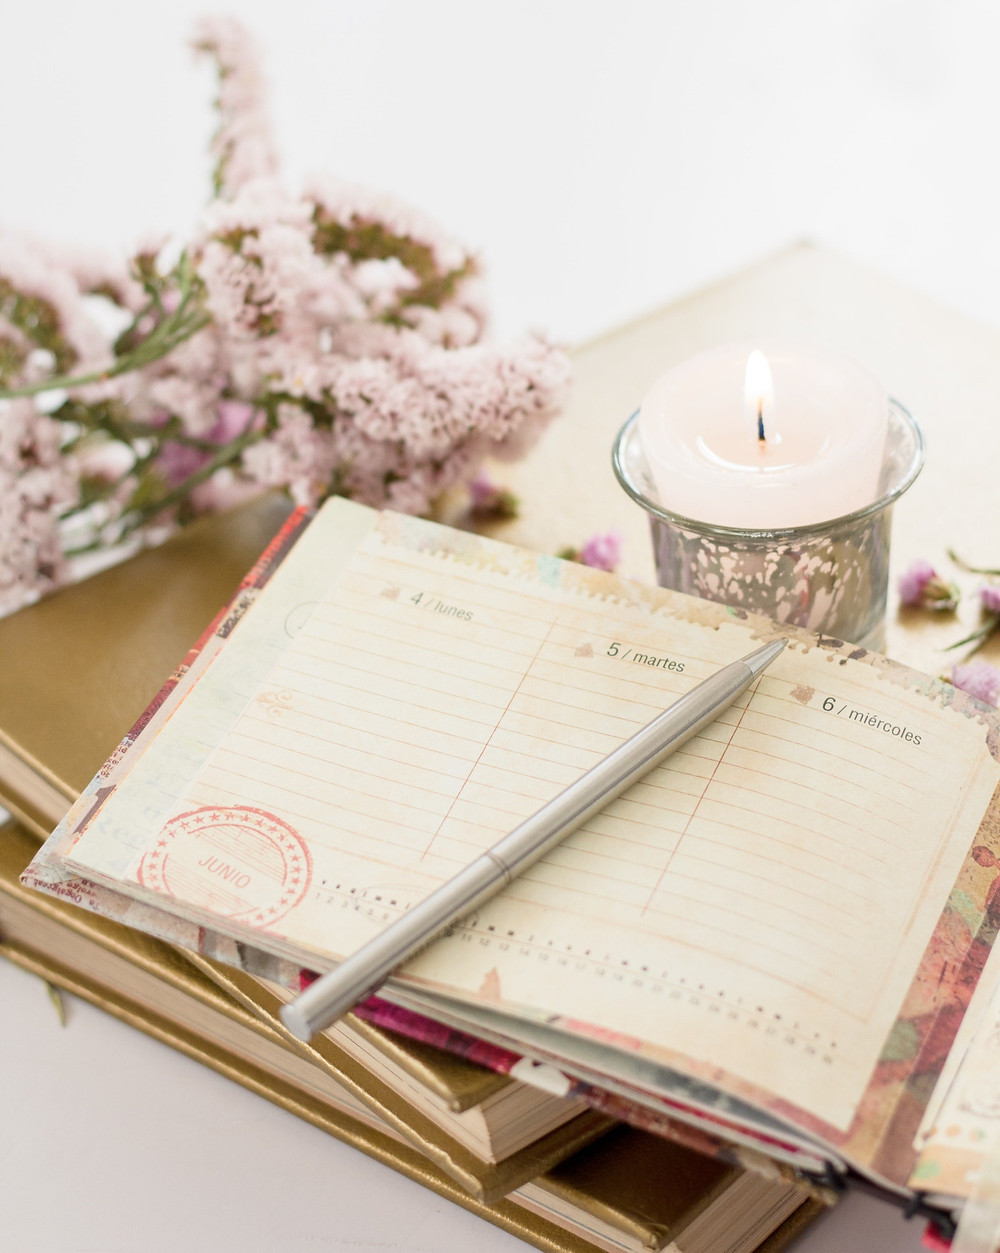 Notebook and pen - how to overcome the fear of change